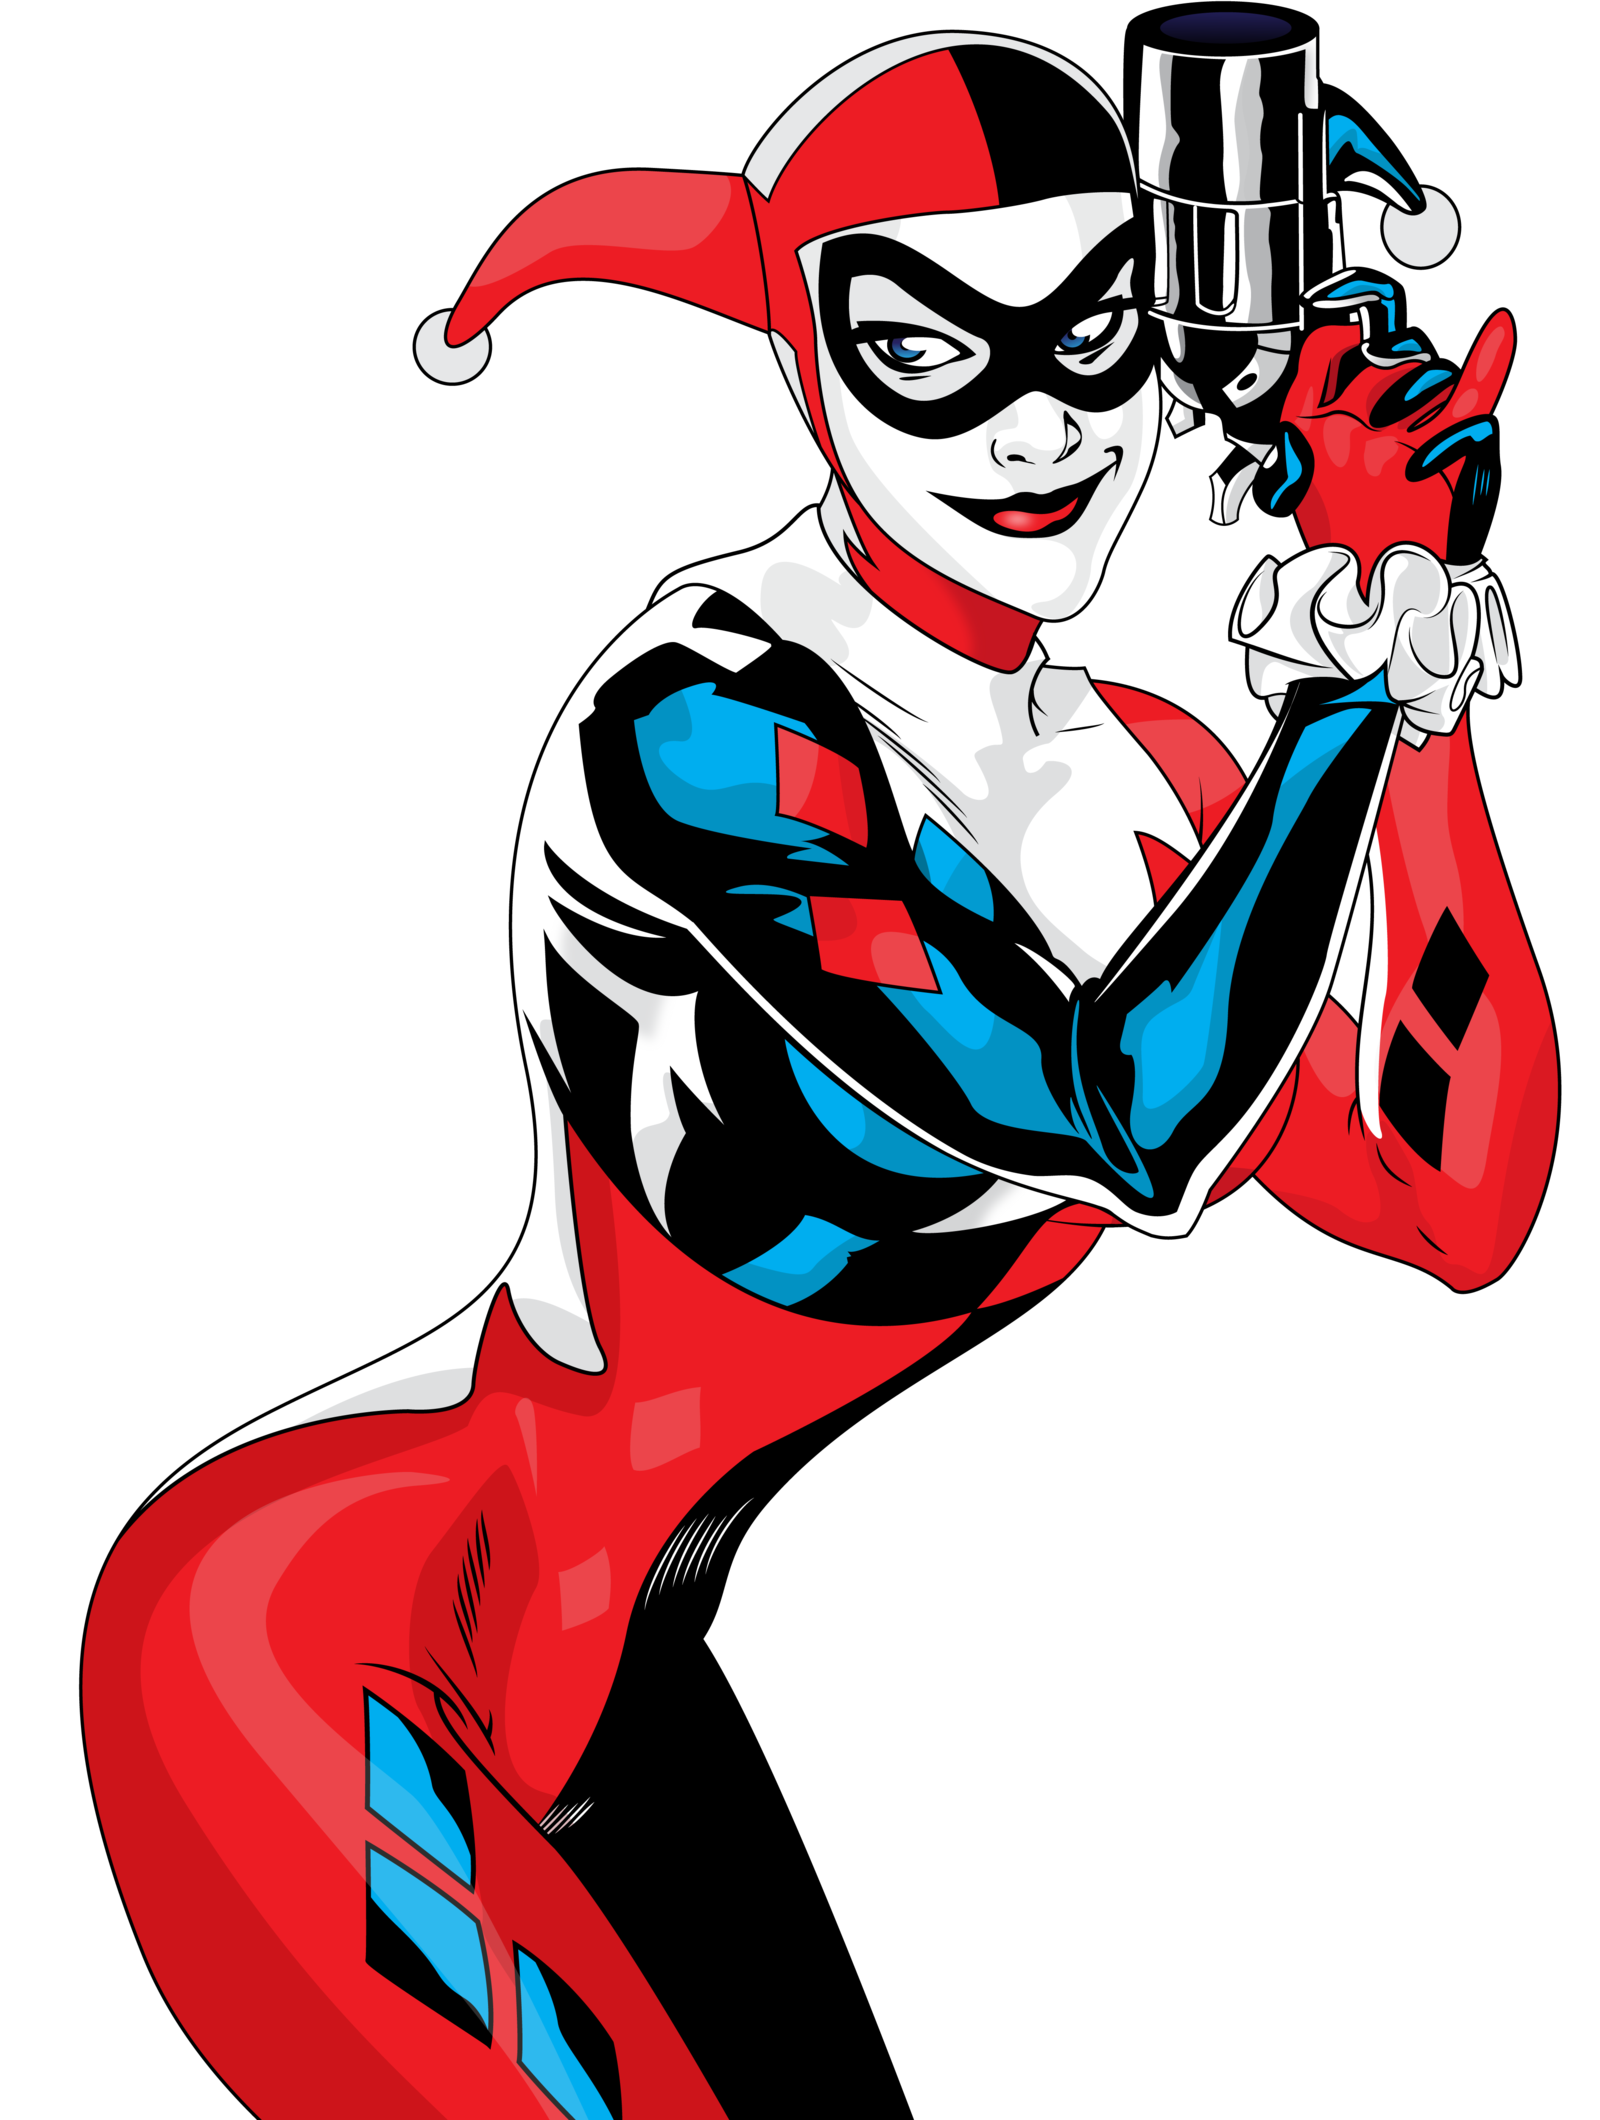 Dc drawing harley quinn. Pin by charudeal on